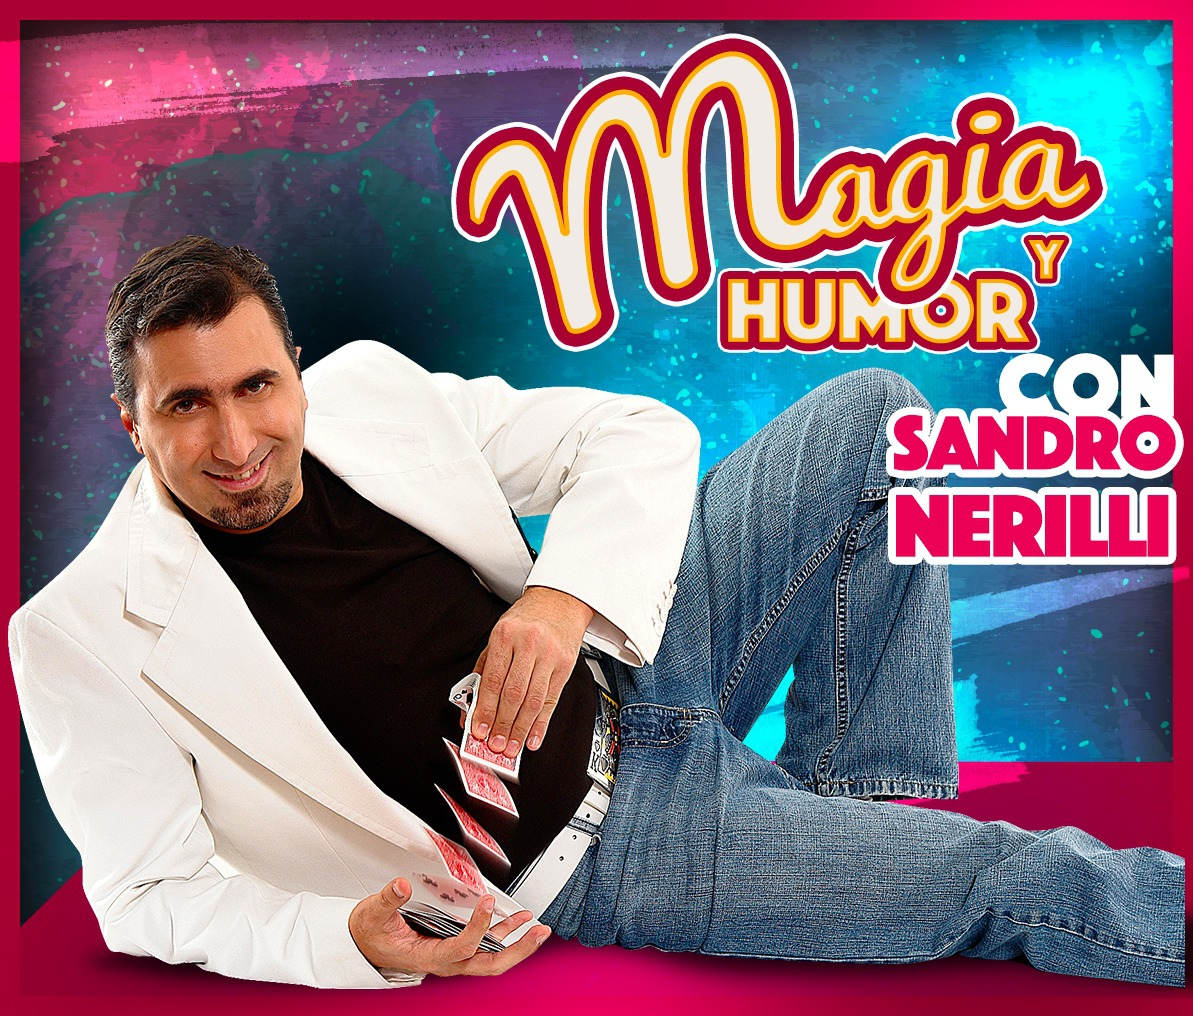 Magic and Humour with Sandro Nerilli in Santa Cruz